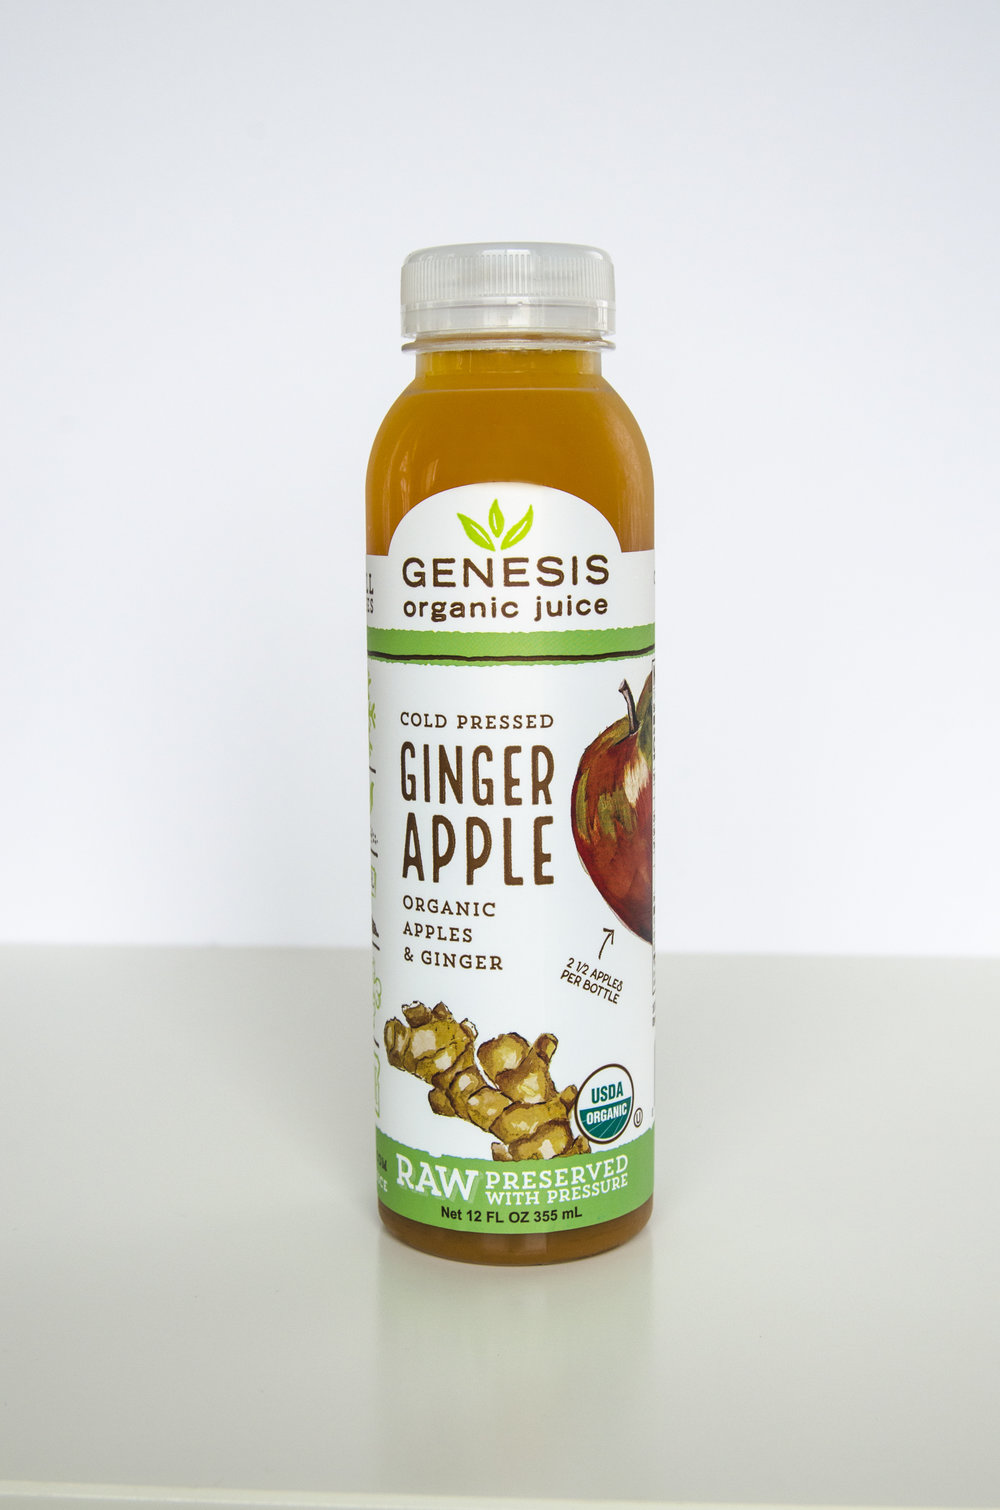 GingerApple.jpeg